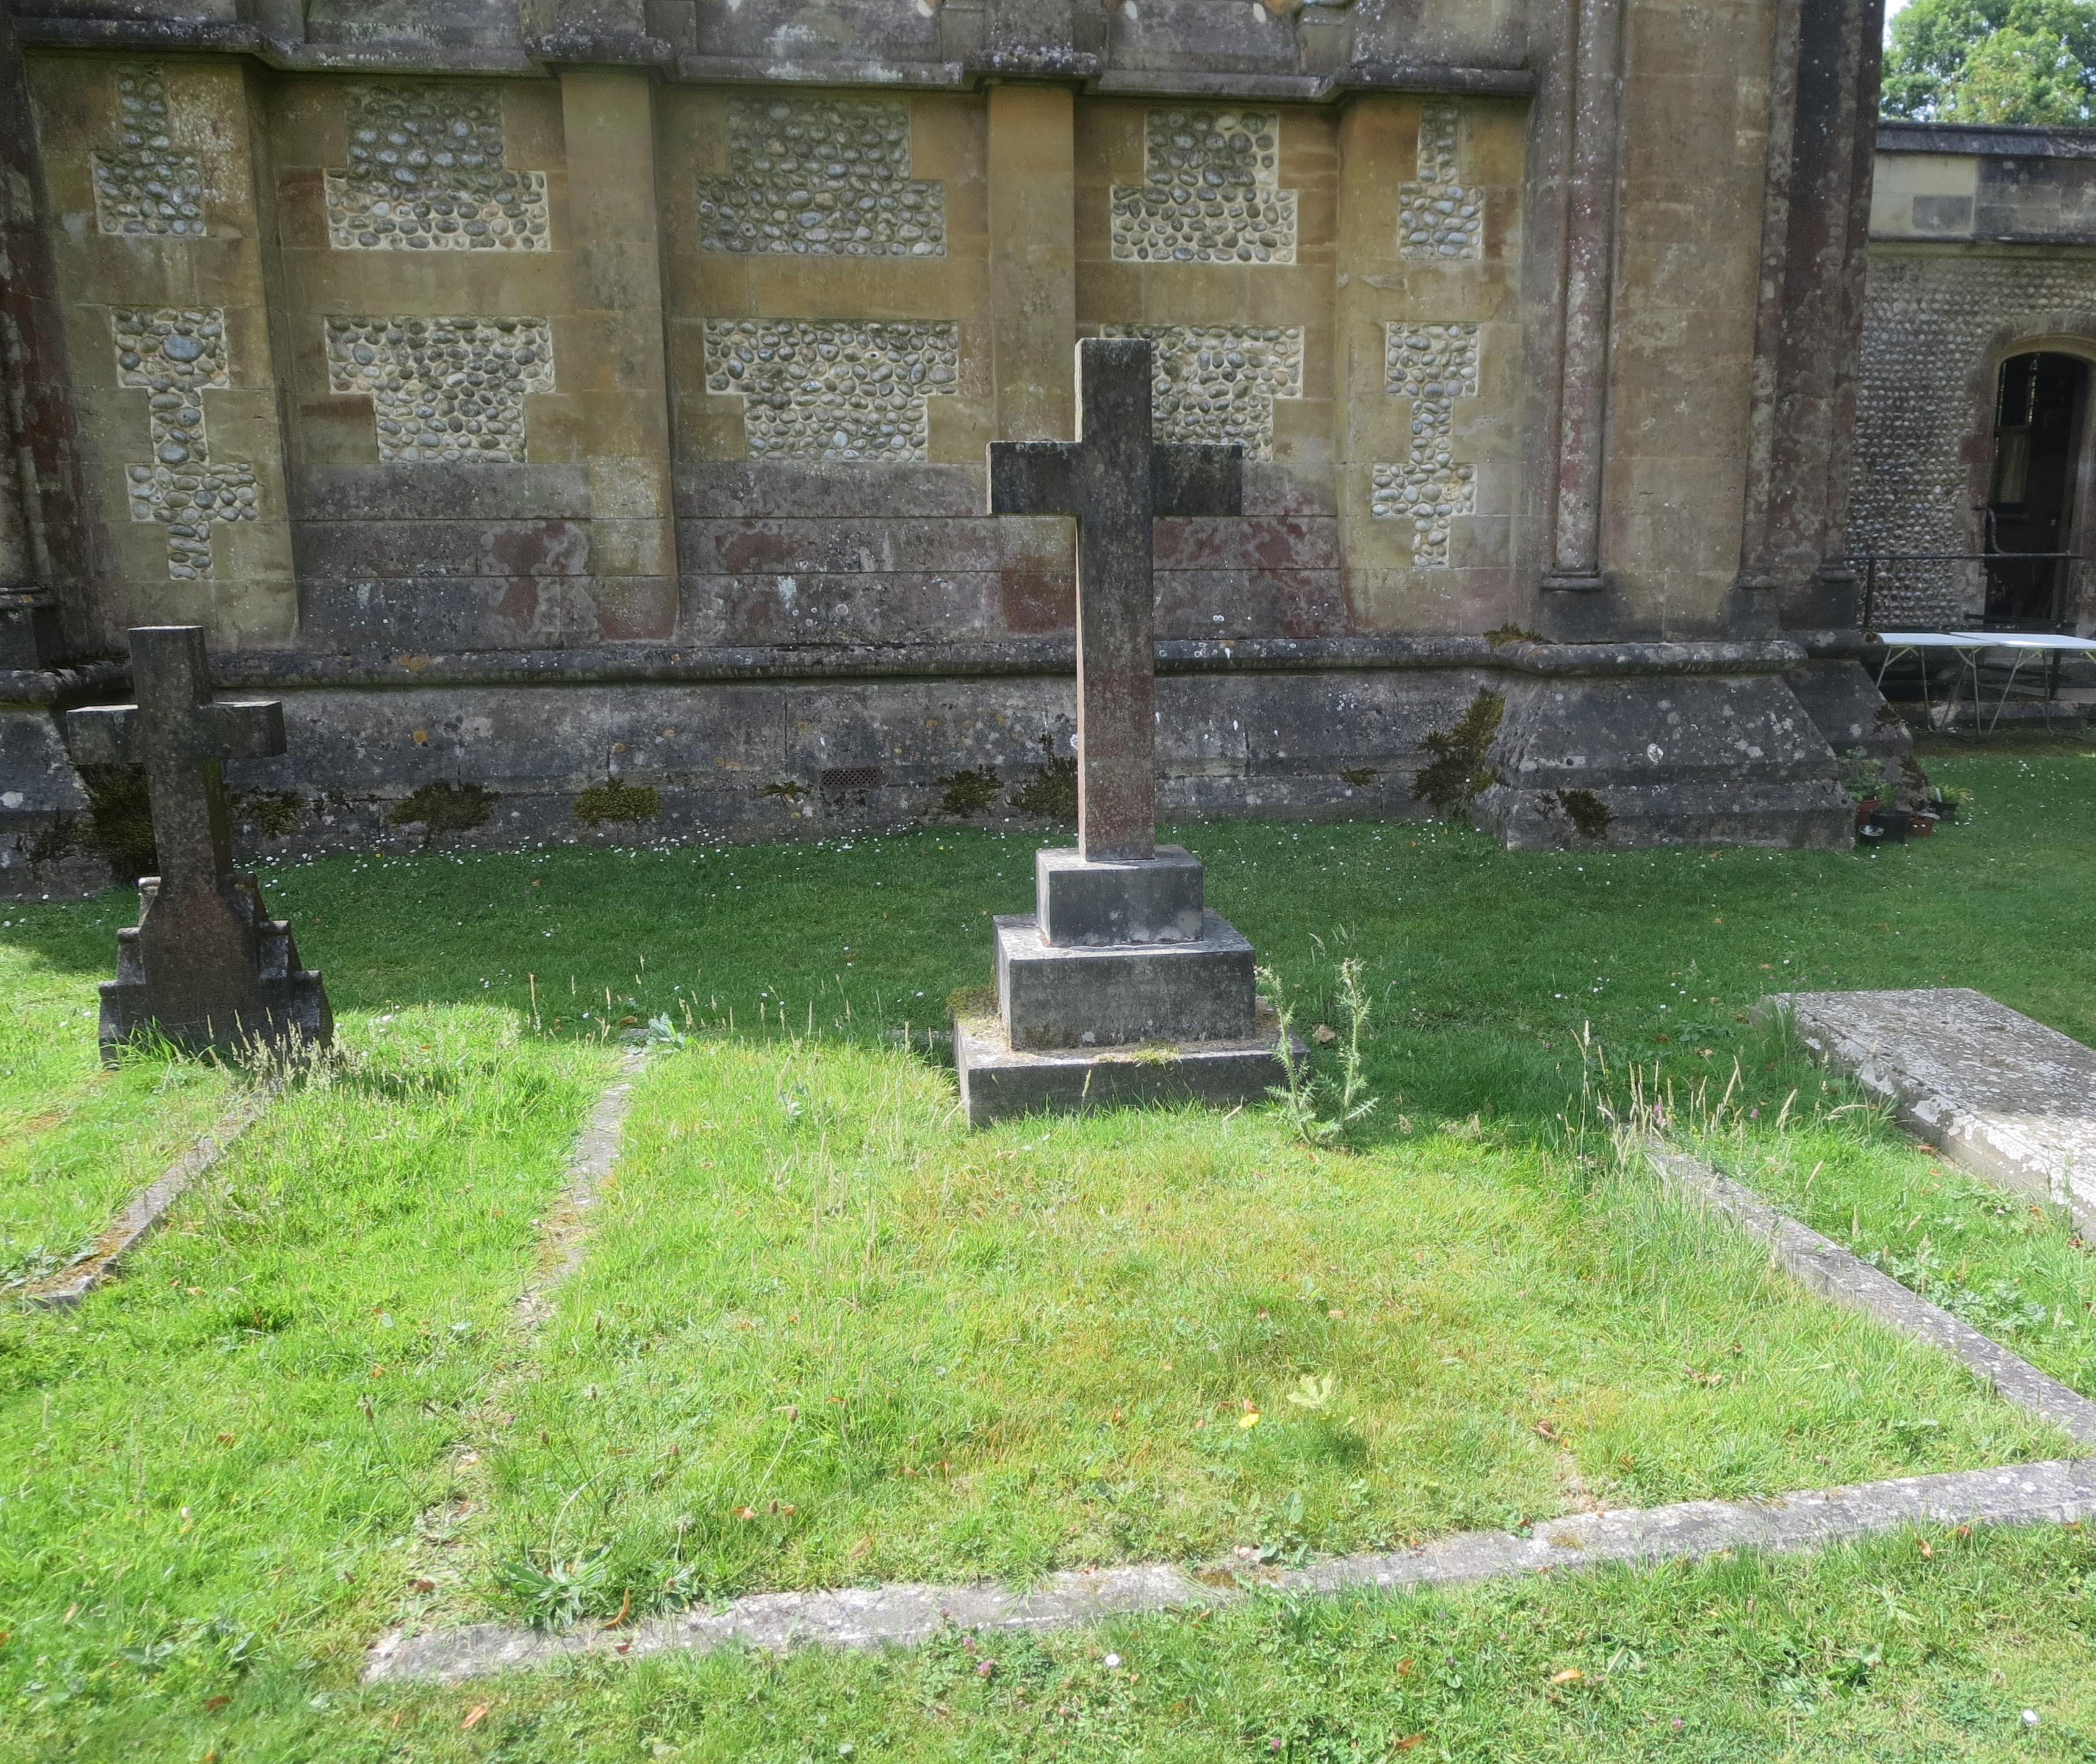 The monument at St Barnabas to George and Laura Cubitt